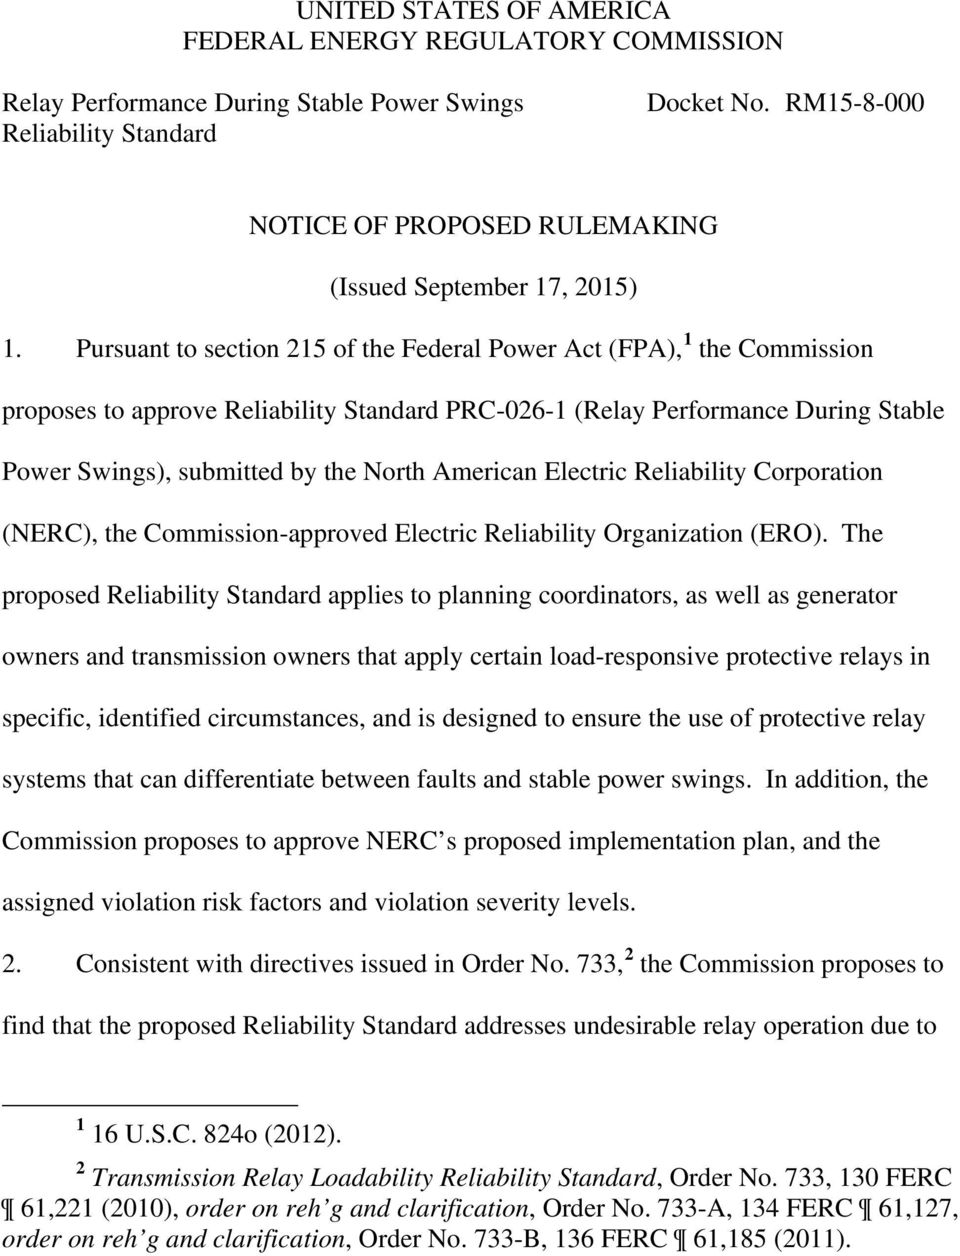 Pursuant to section 215 of the Federal Power Act (FPA), 1 the Commission proposes to approve Reliability Standard PRC-026-1 (Relay Performance During Stable Power Swings), submitted by the North